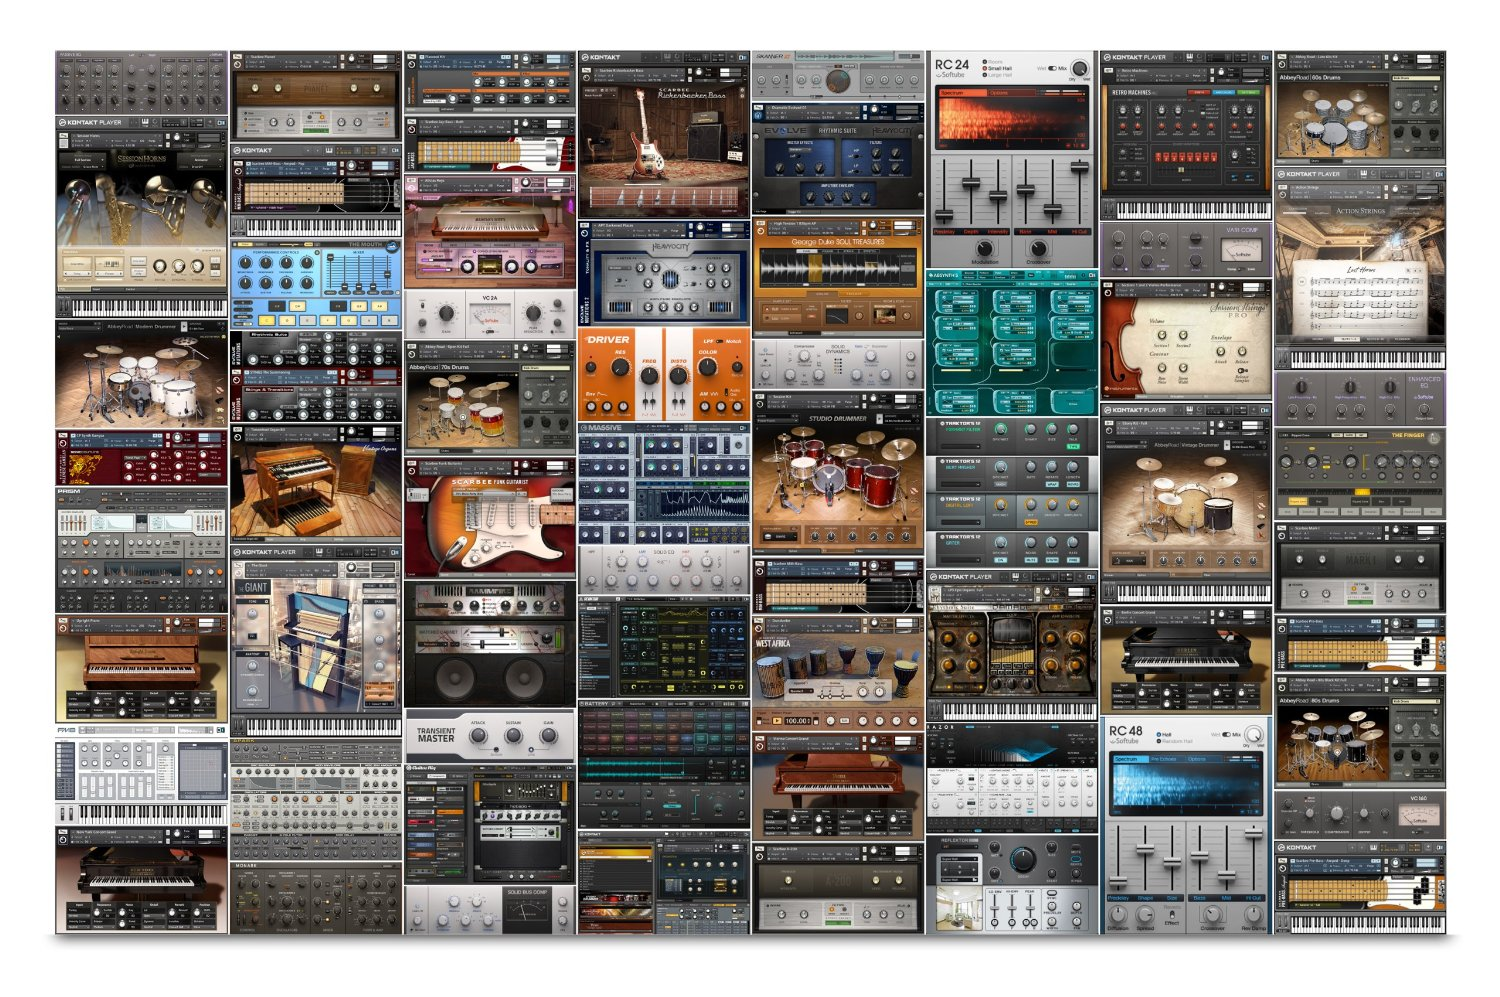 Gift Guide: The complete guide to home music production on your iPad